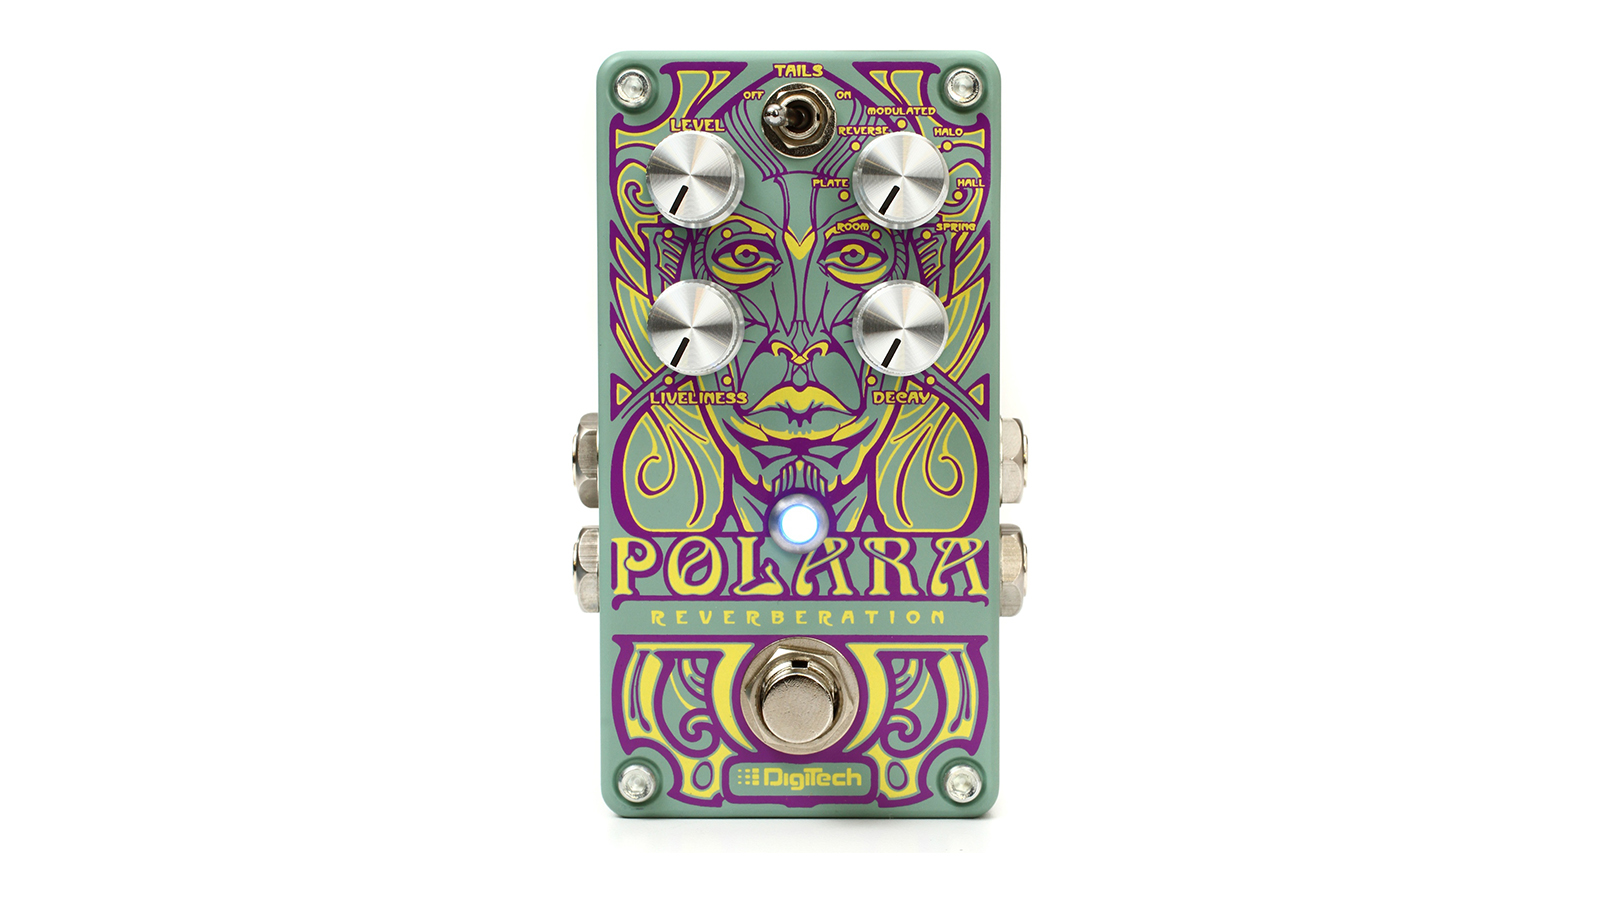 The 10 best reverb pedals 2019: our pick of the best guitar effects for your pedalboard | MusicRadar